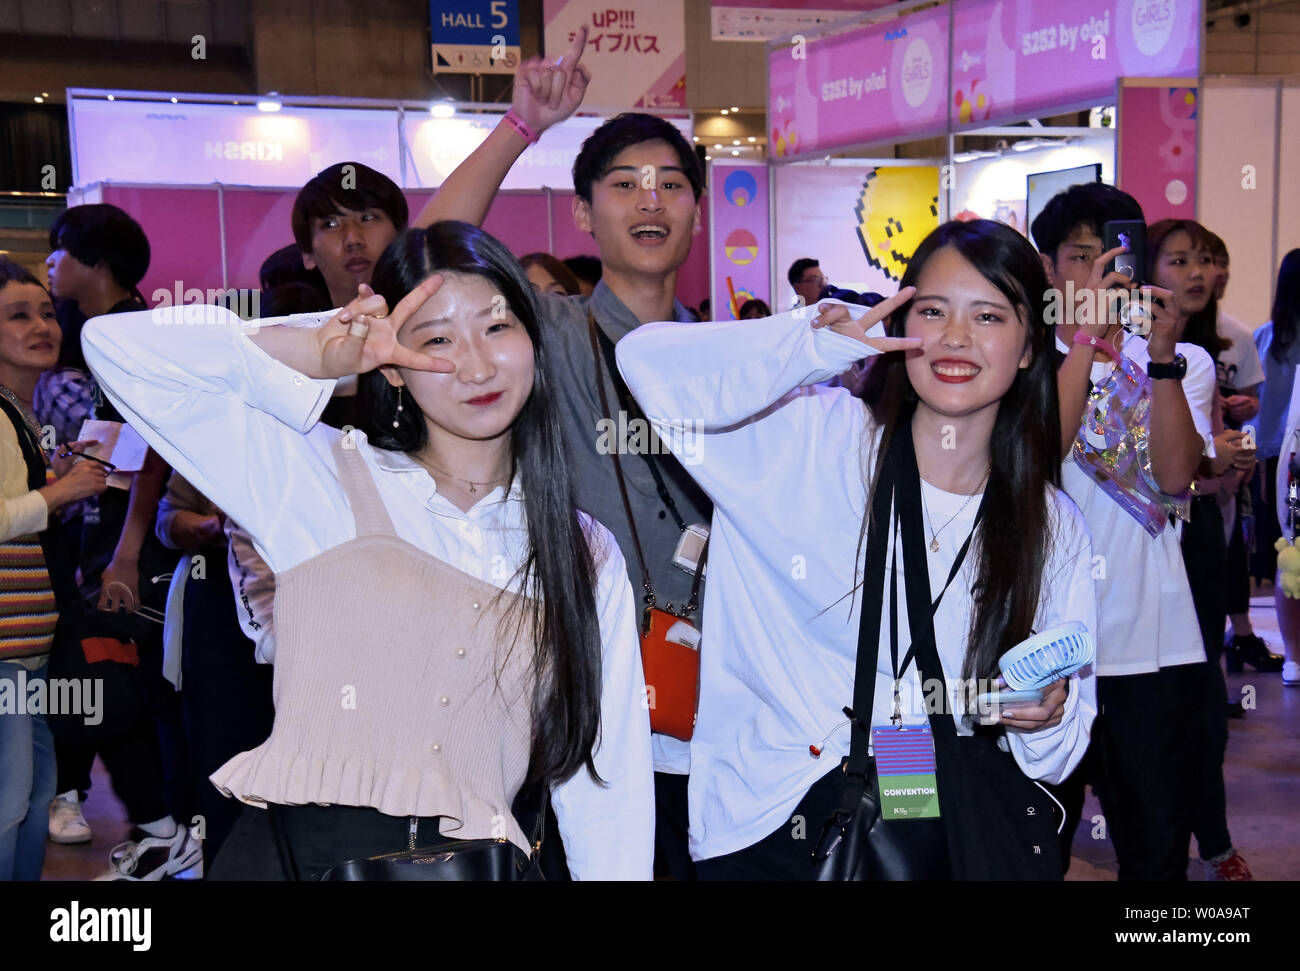 Visitors pose for photographer during the